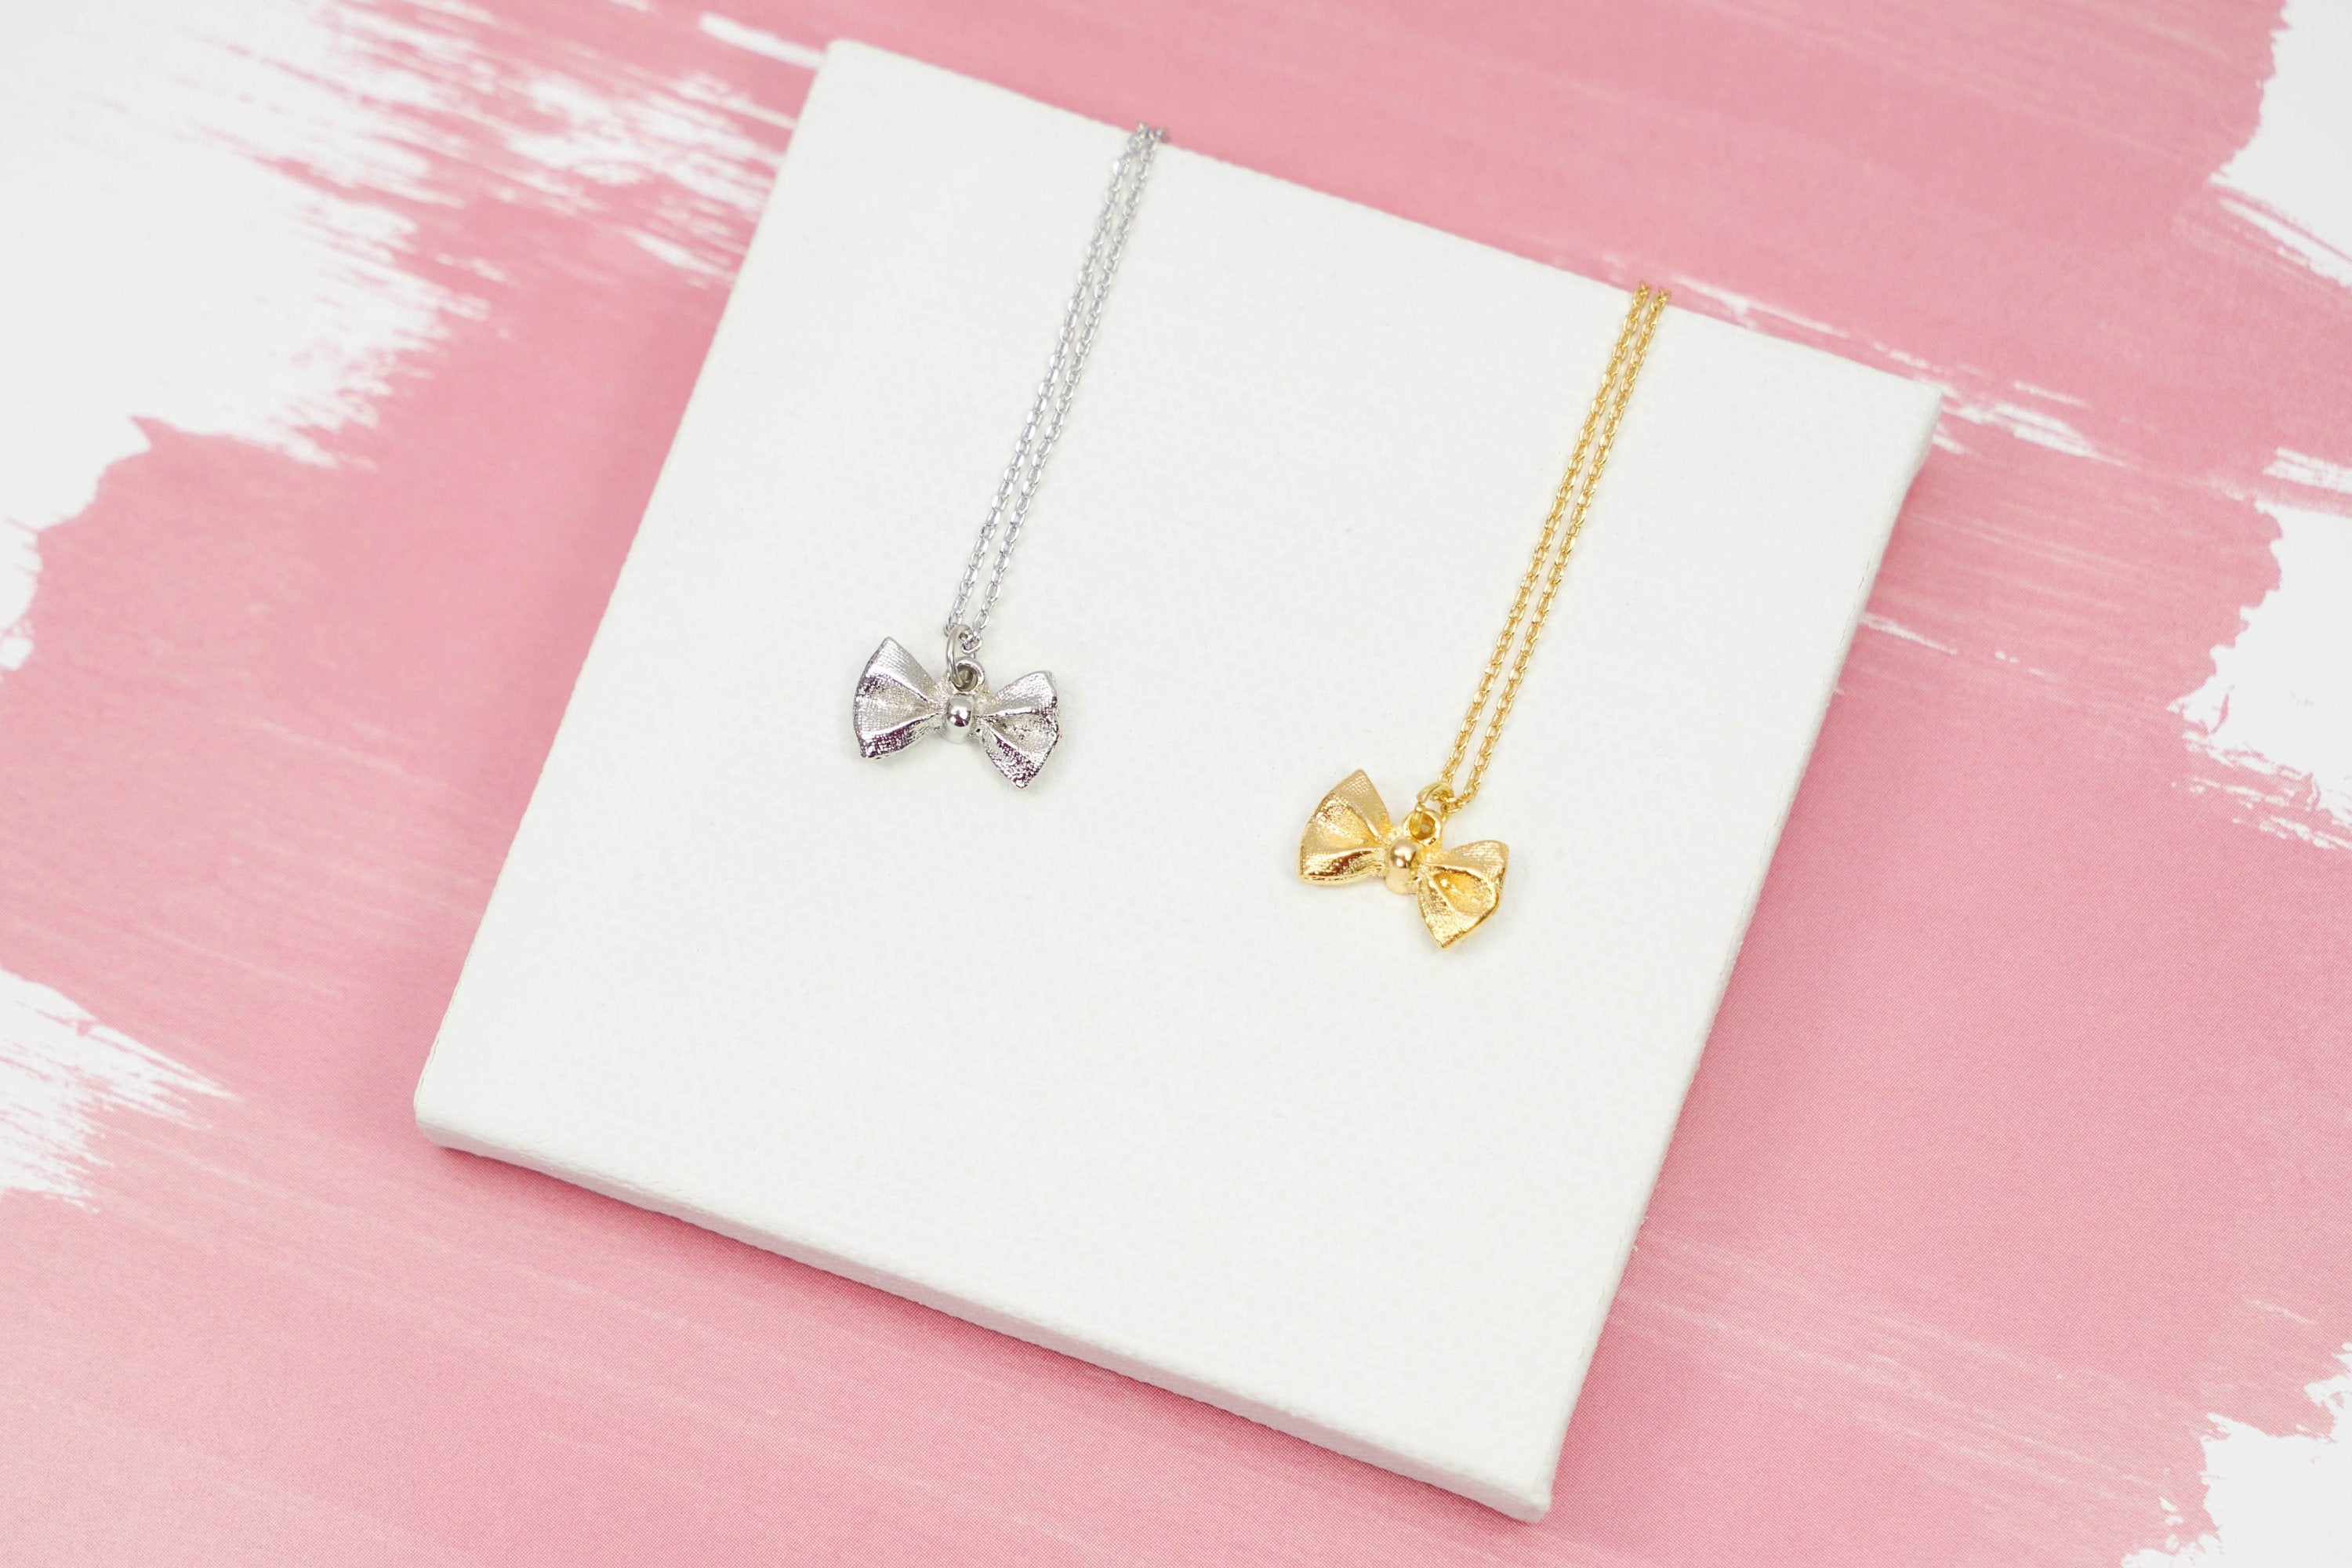 Sparkling Bow Necklace, Dainty Gold Ribbon, Great For Layering, Simple,  Minimalist Regarding 2020 Sparkling Bow Necklaces (View 19 of 25)